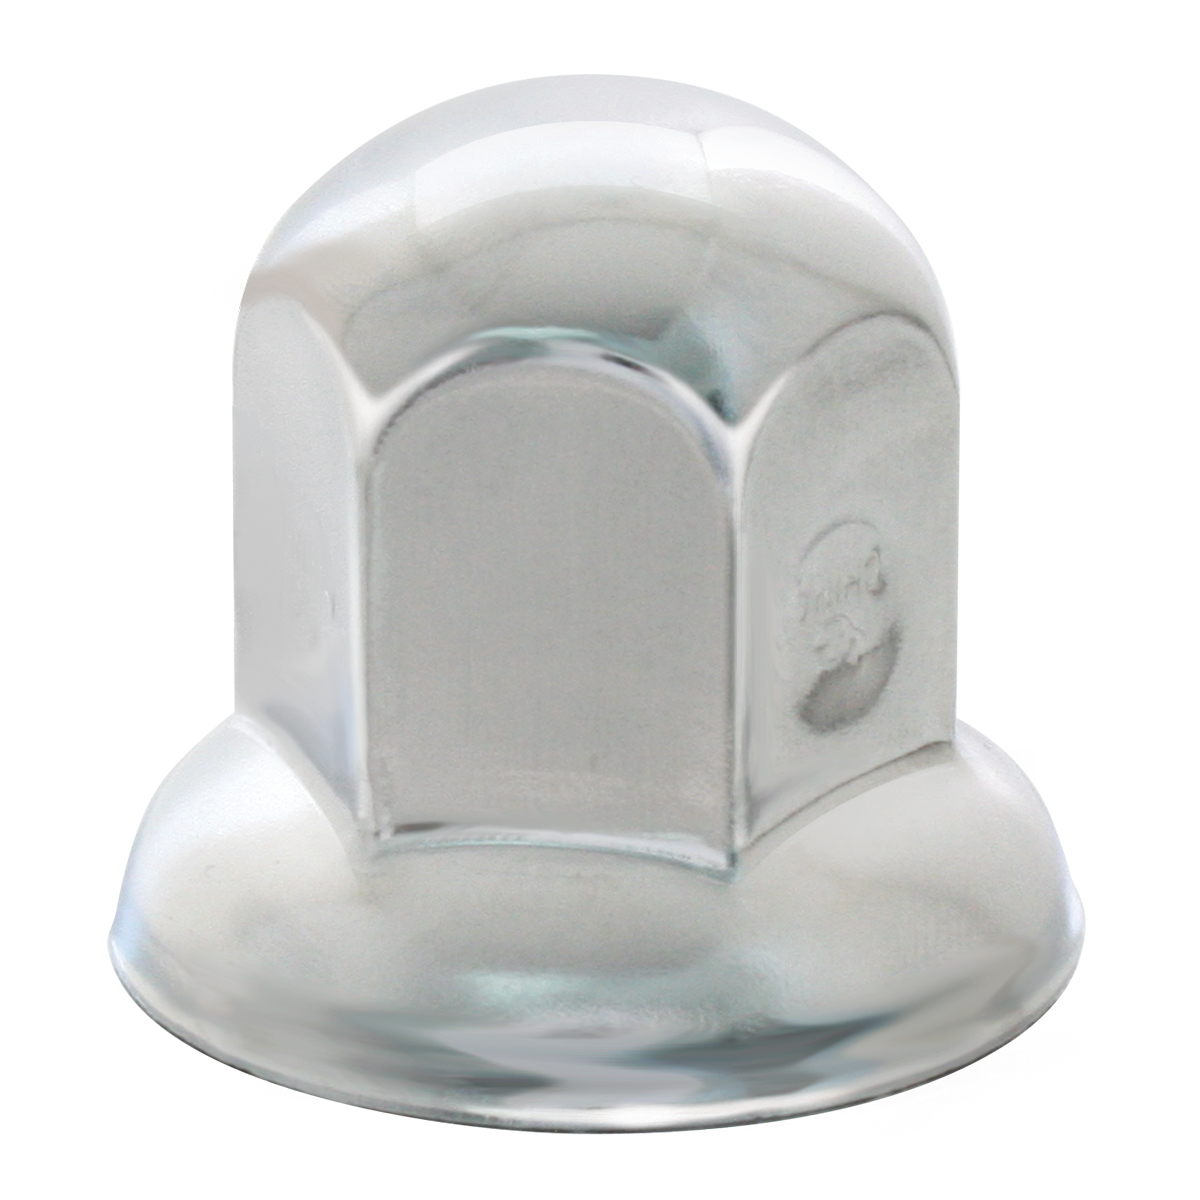 Chrome Push-On Standard Lug Nut Cover w/ Flange for Multi-Purpose Usage